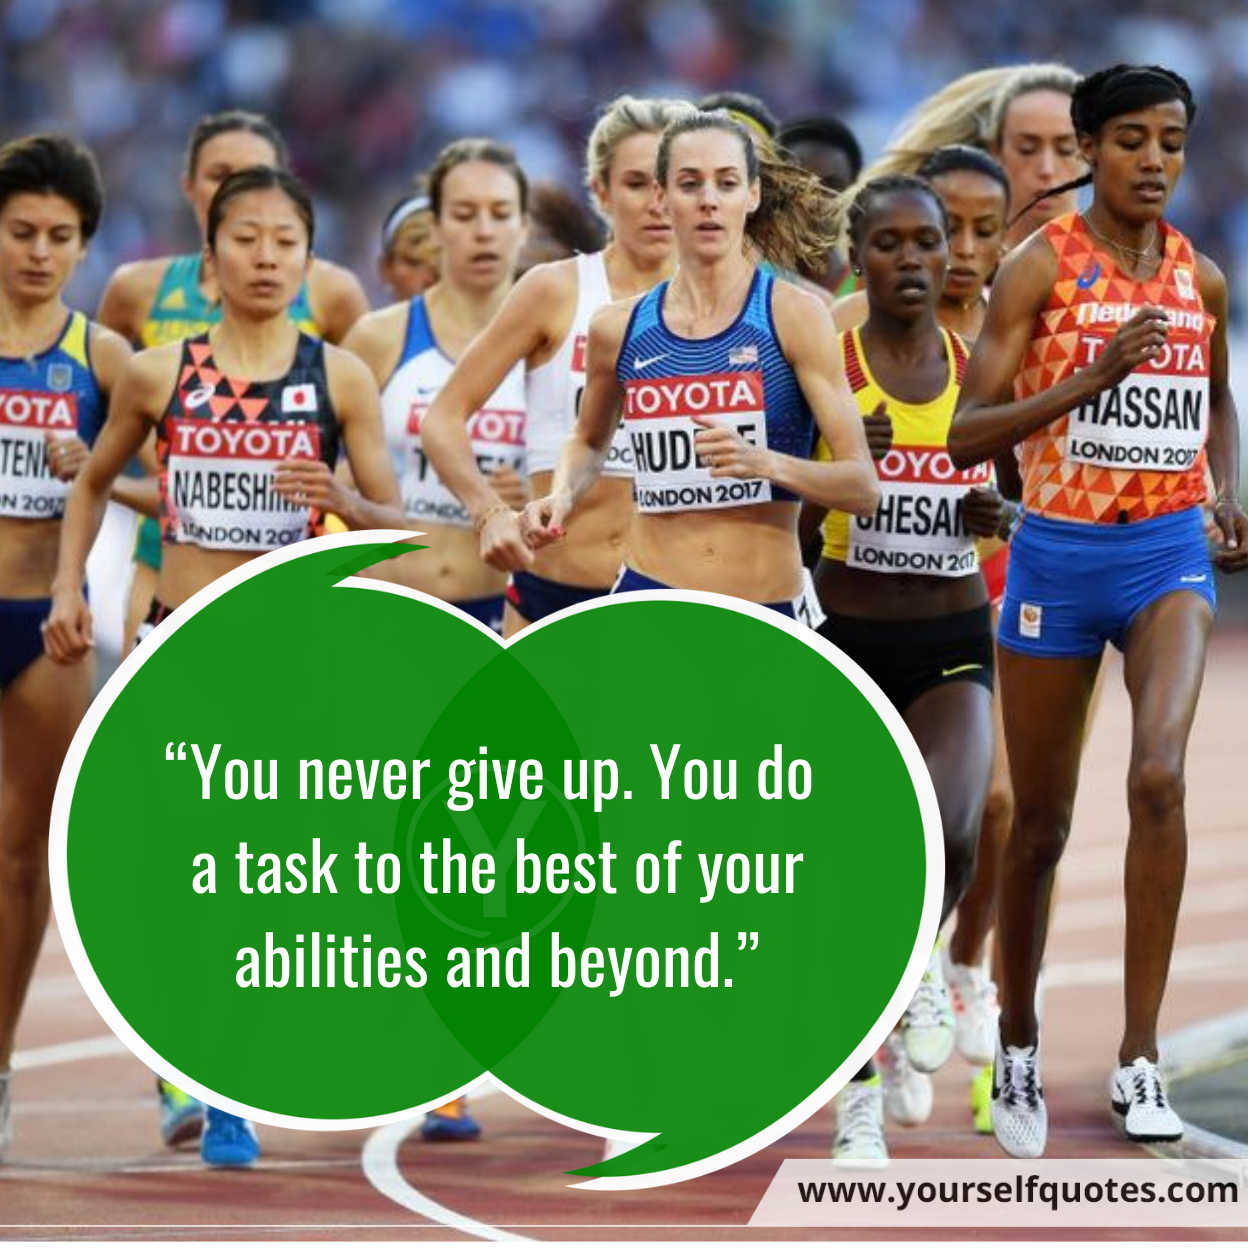 World Athletics Day Quotes Images